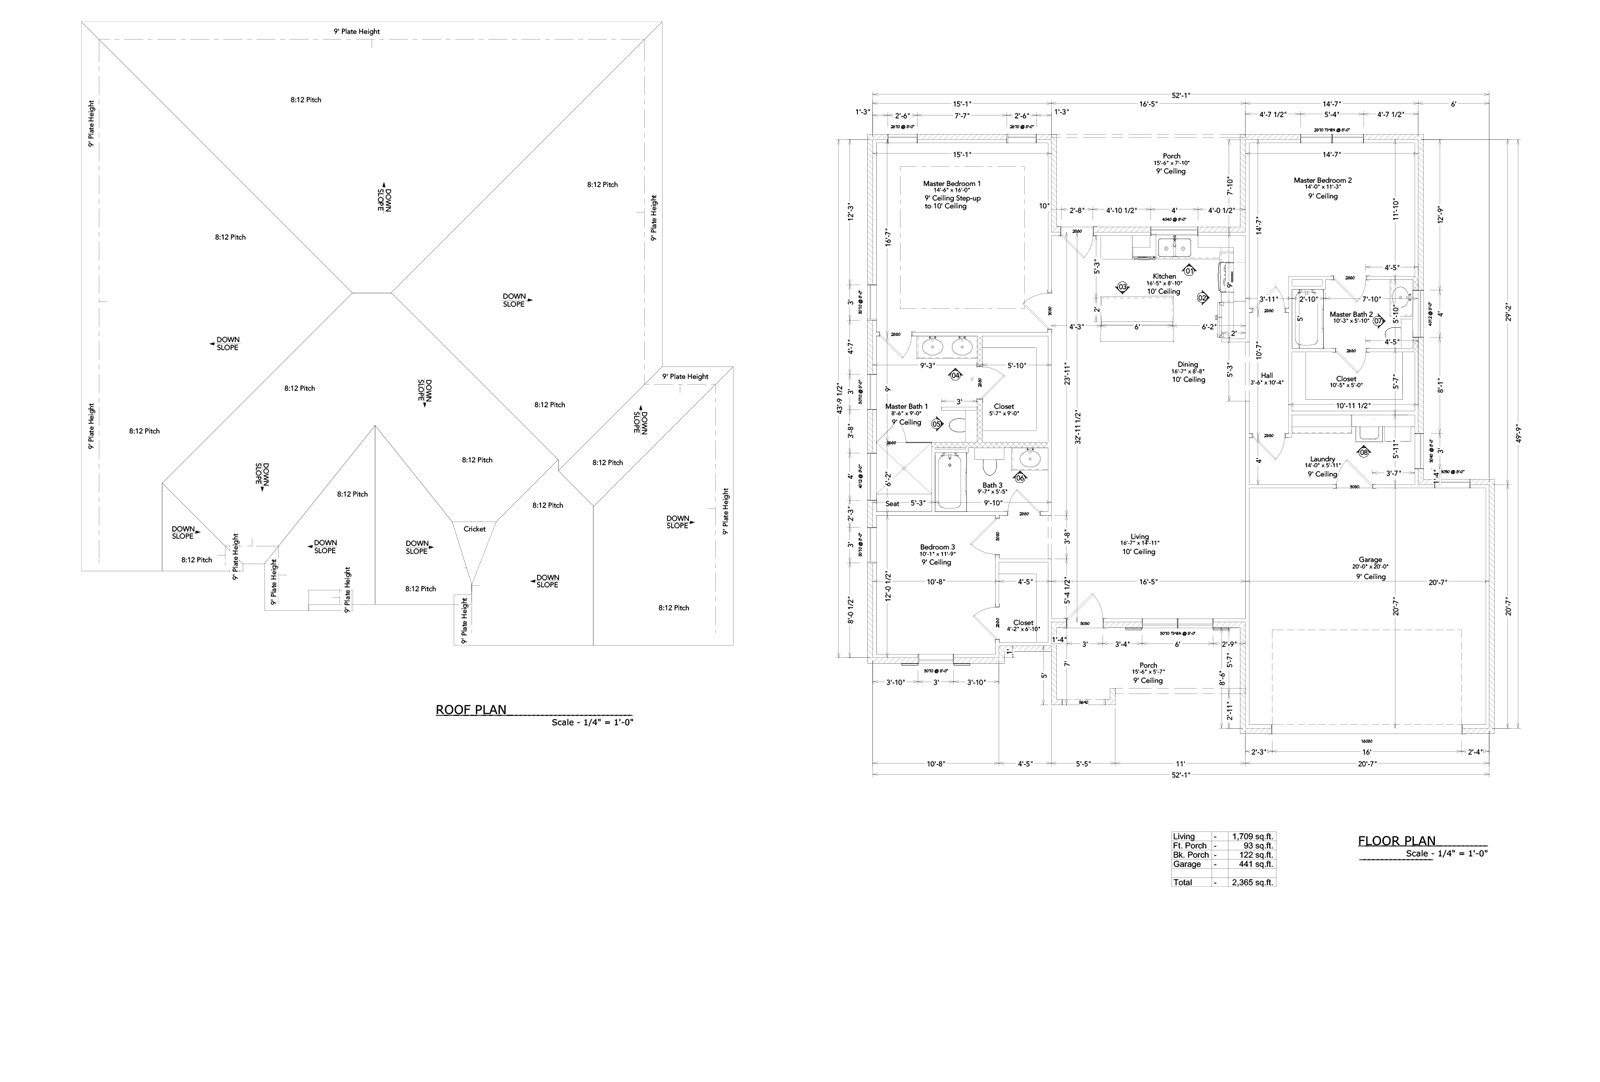 Victory Roof and Floor Plan